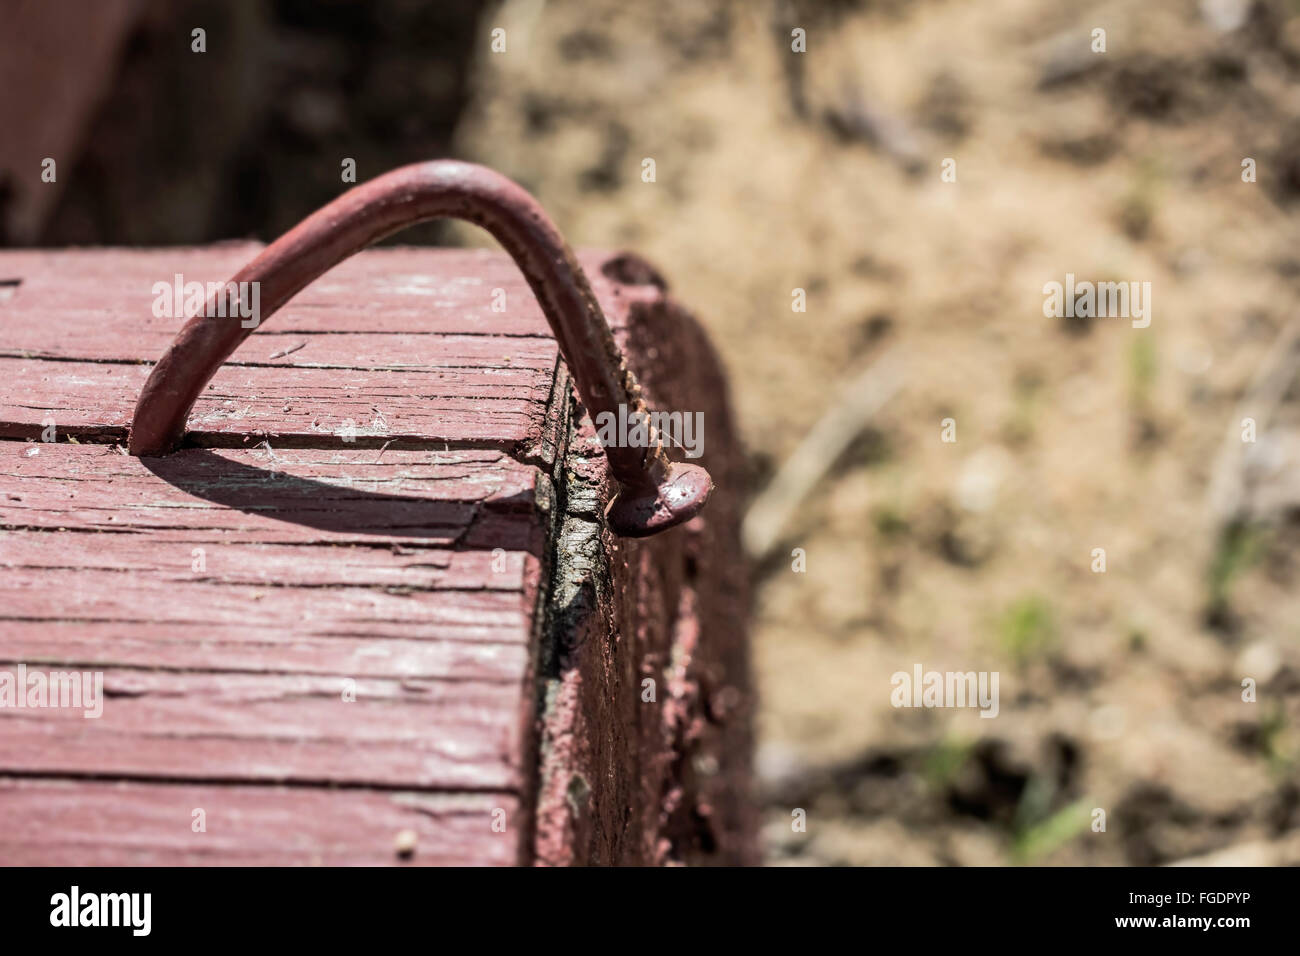 Bent nail driven into block of wood on sunny day - Stock Image